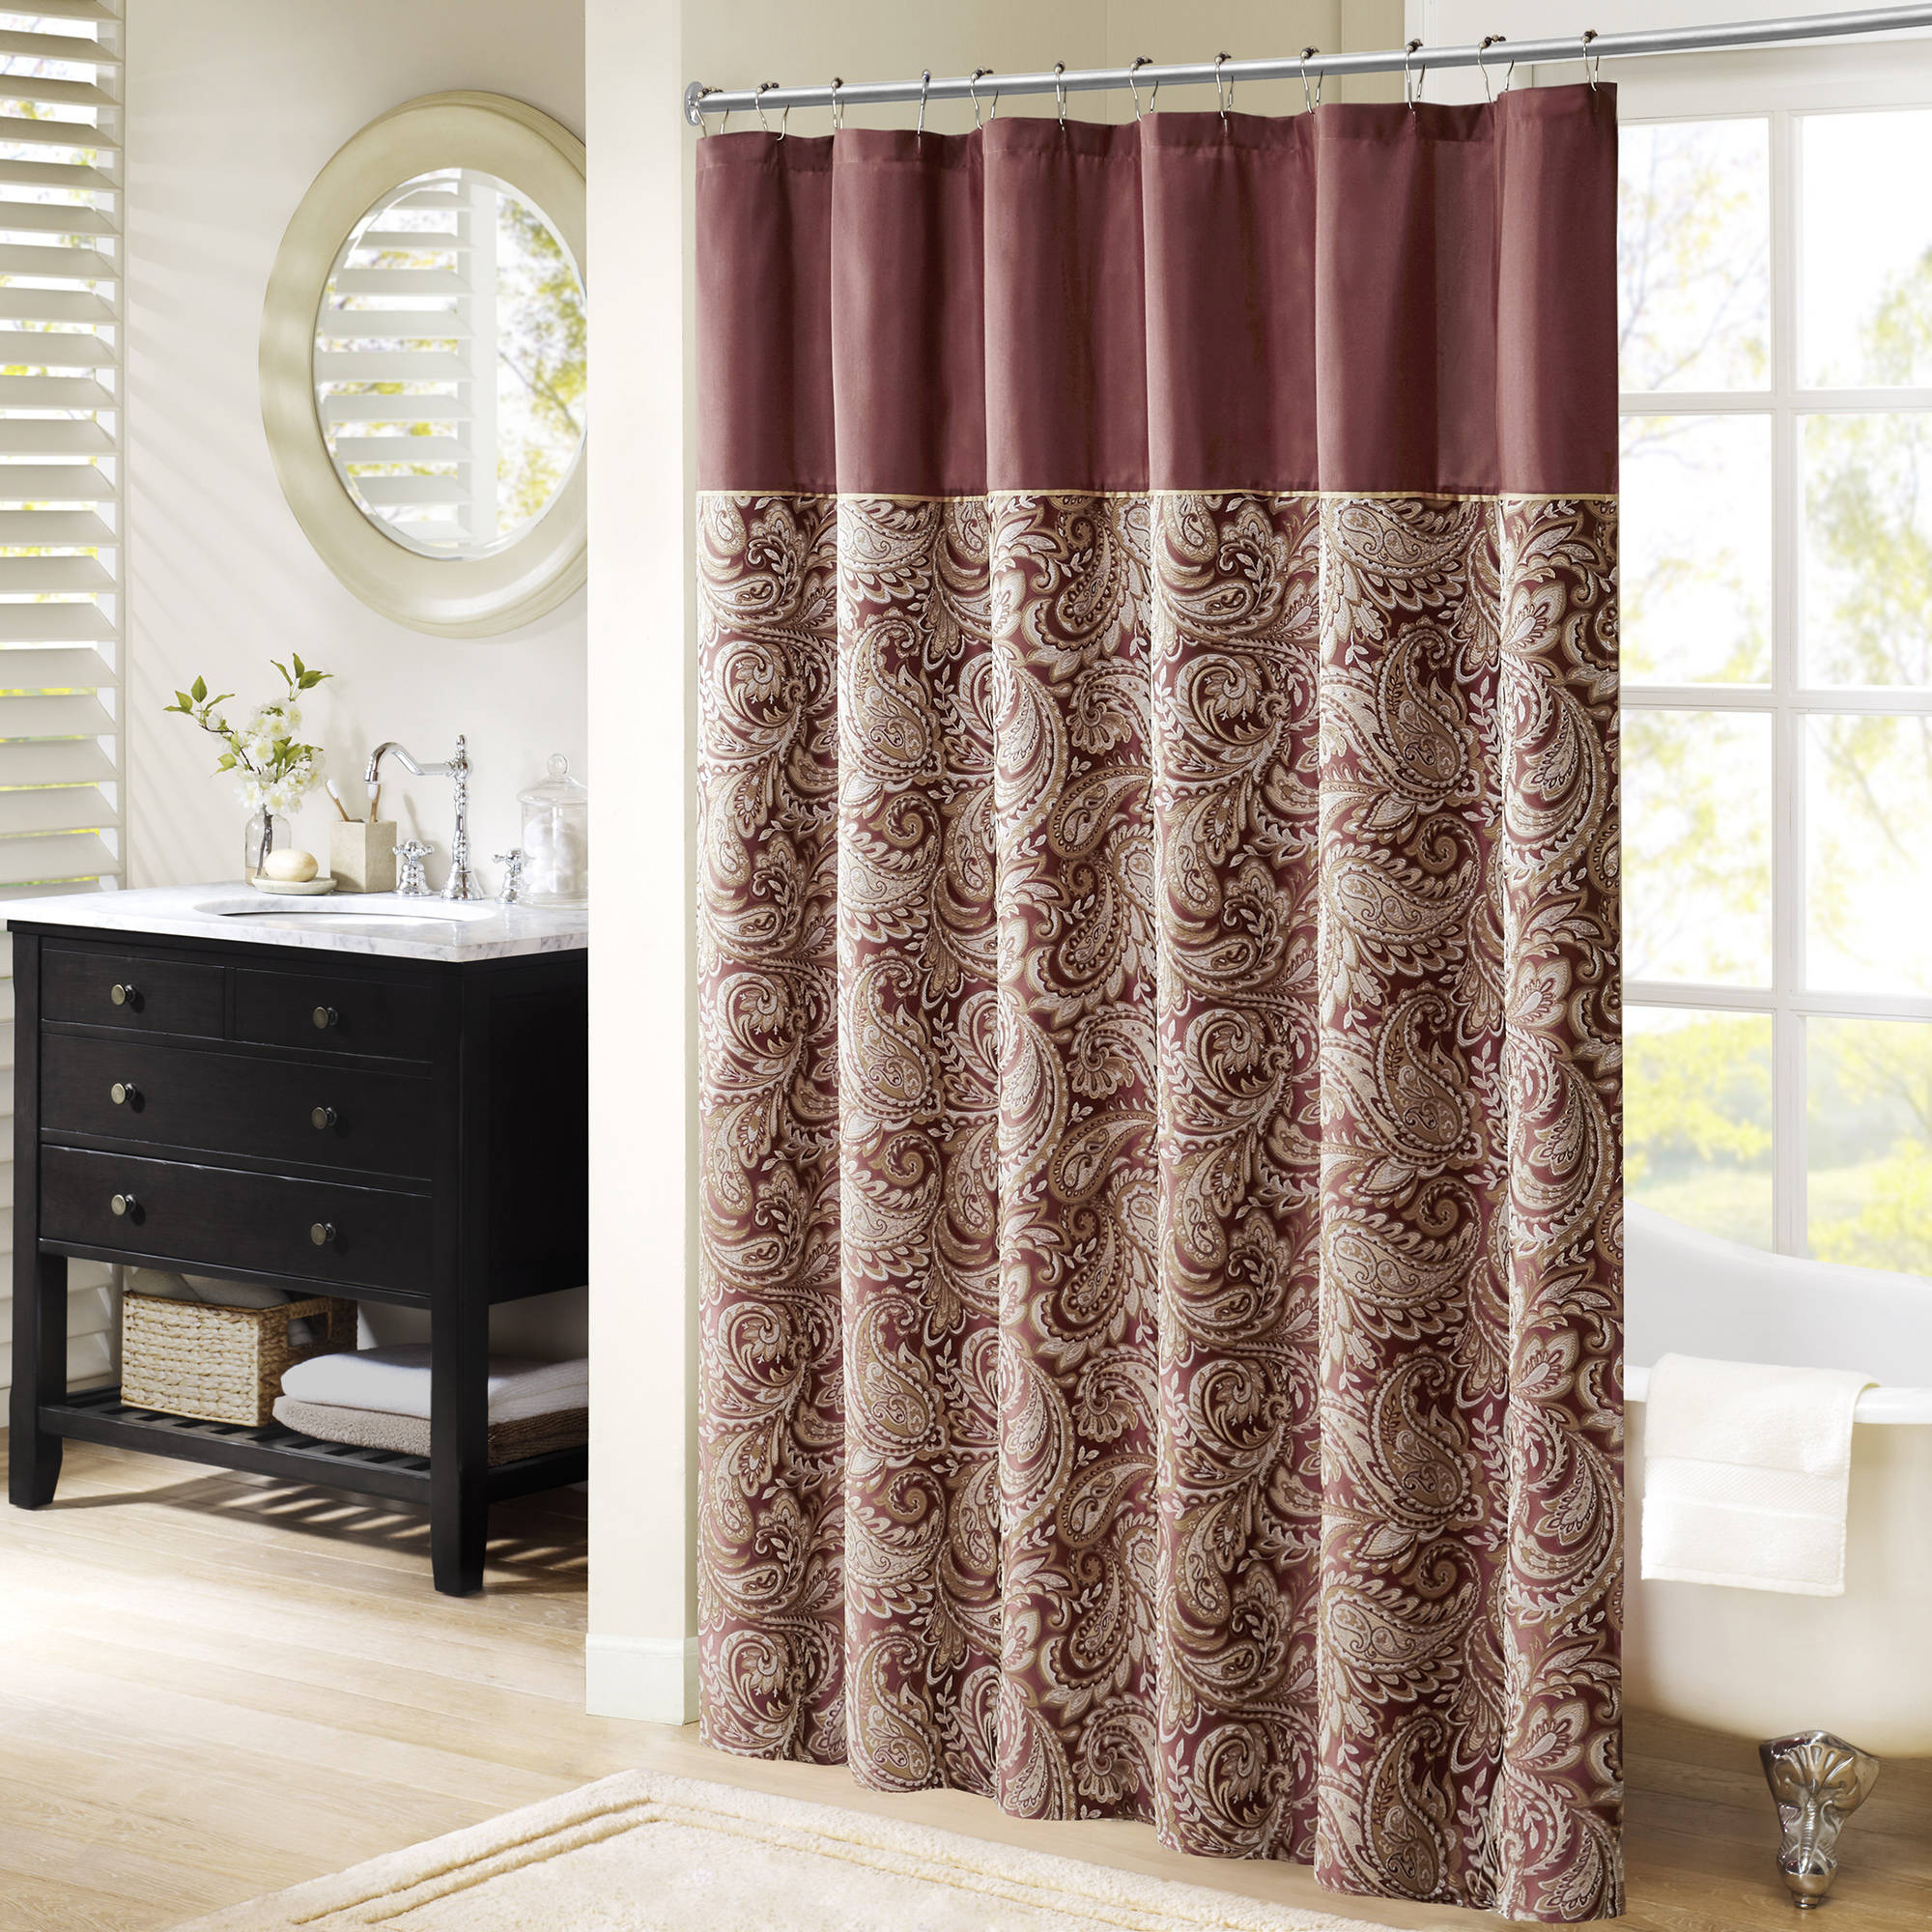 Curtains Shower Curtains Walmartcom Walmartcom